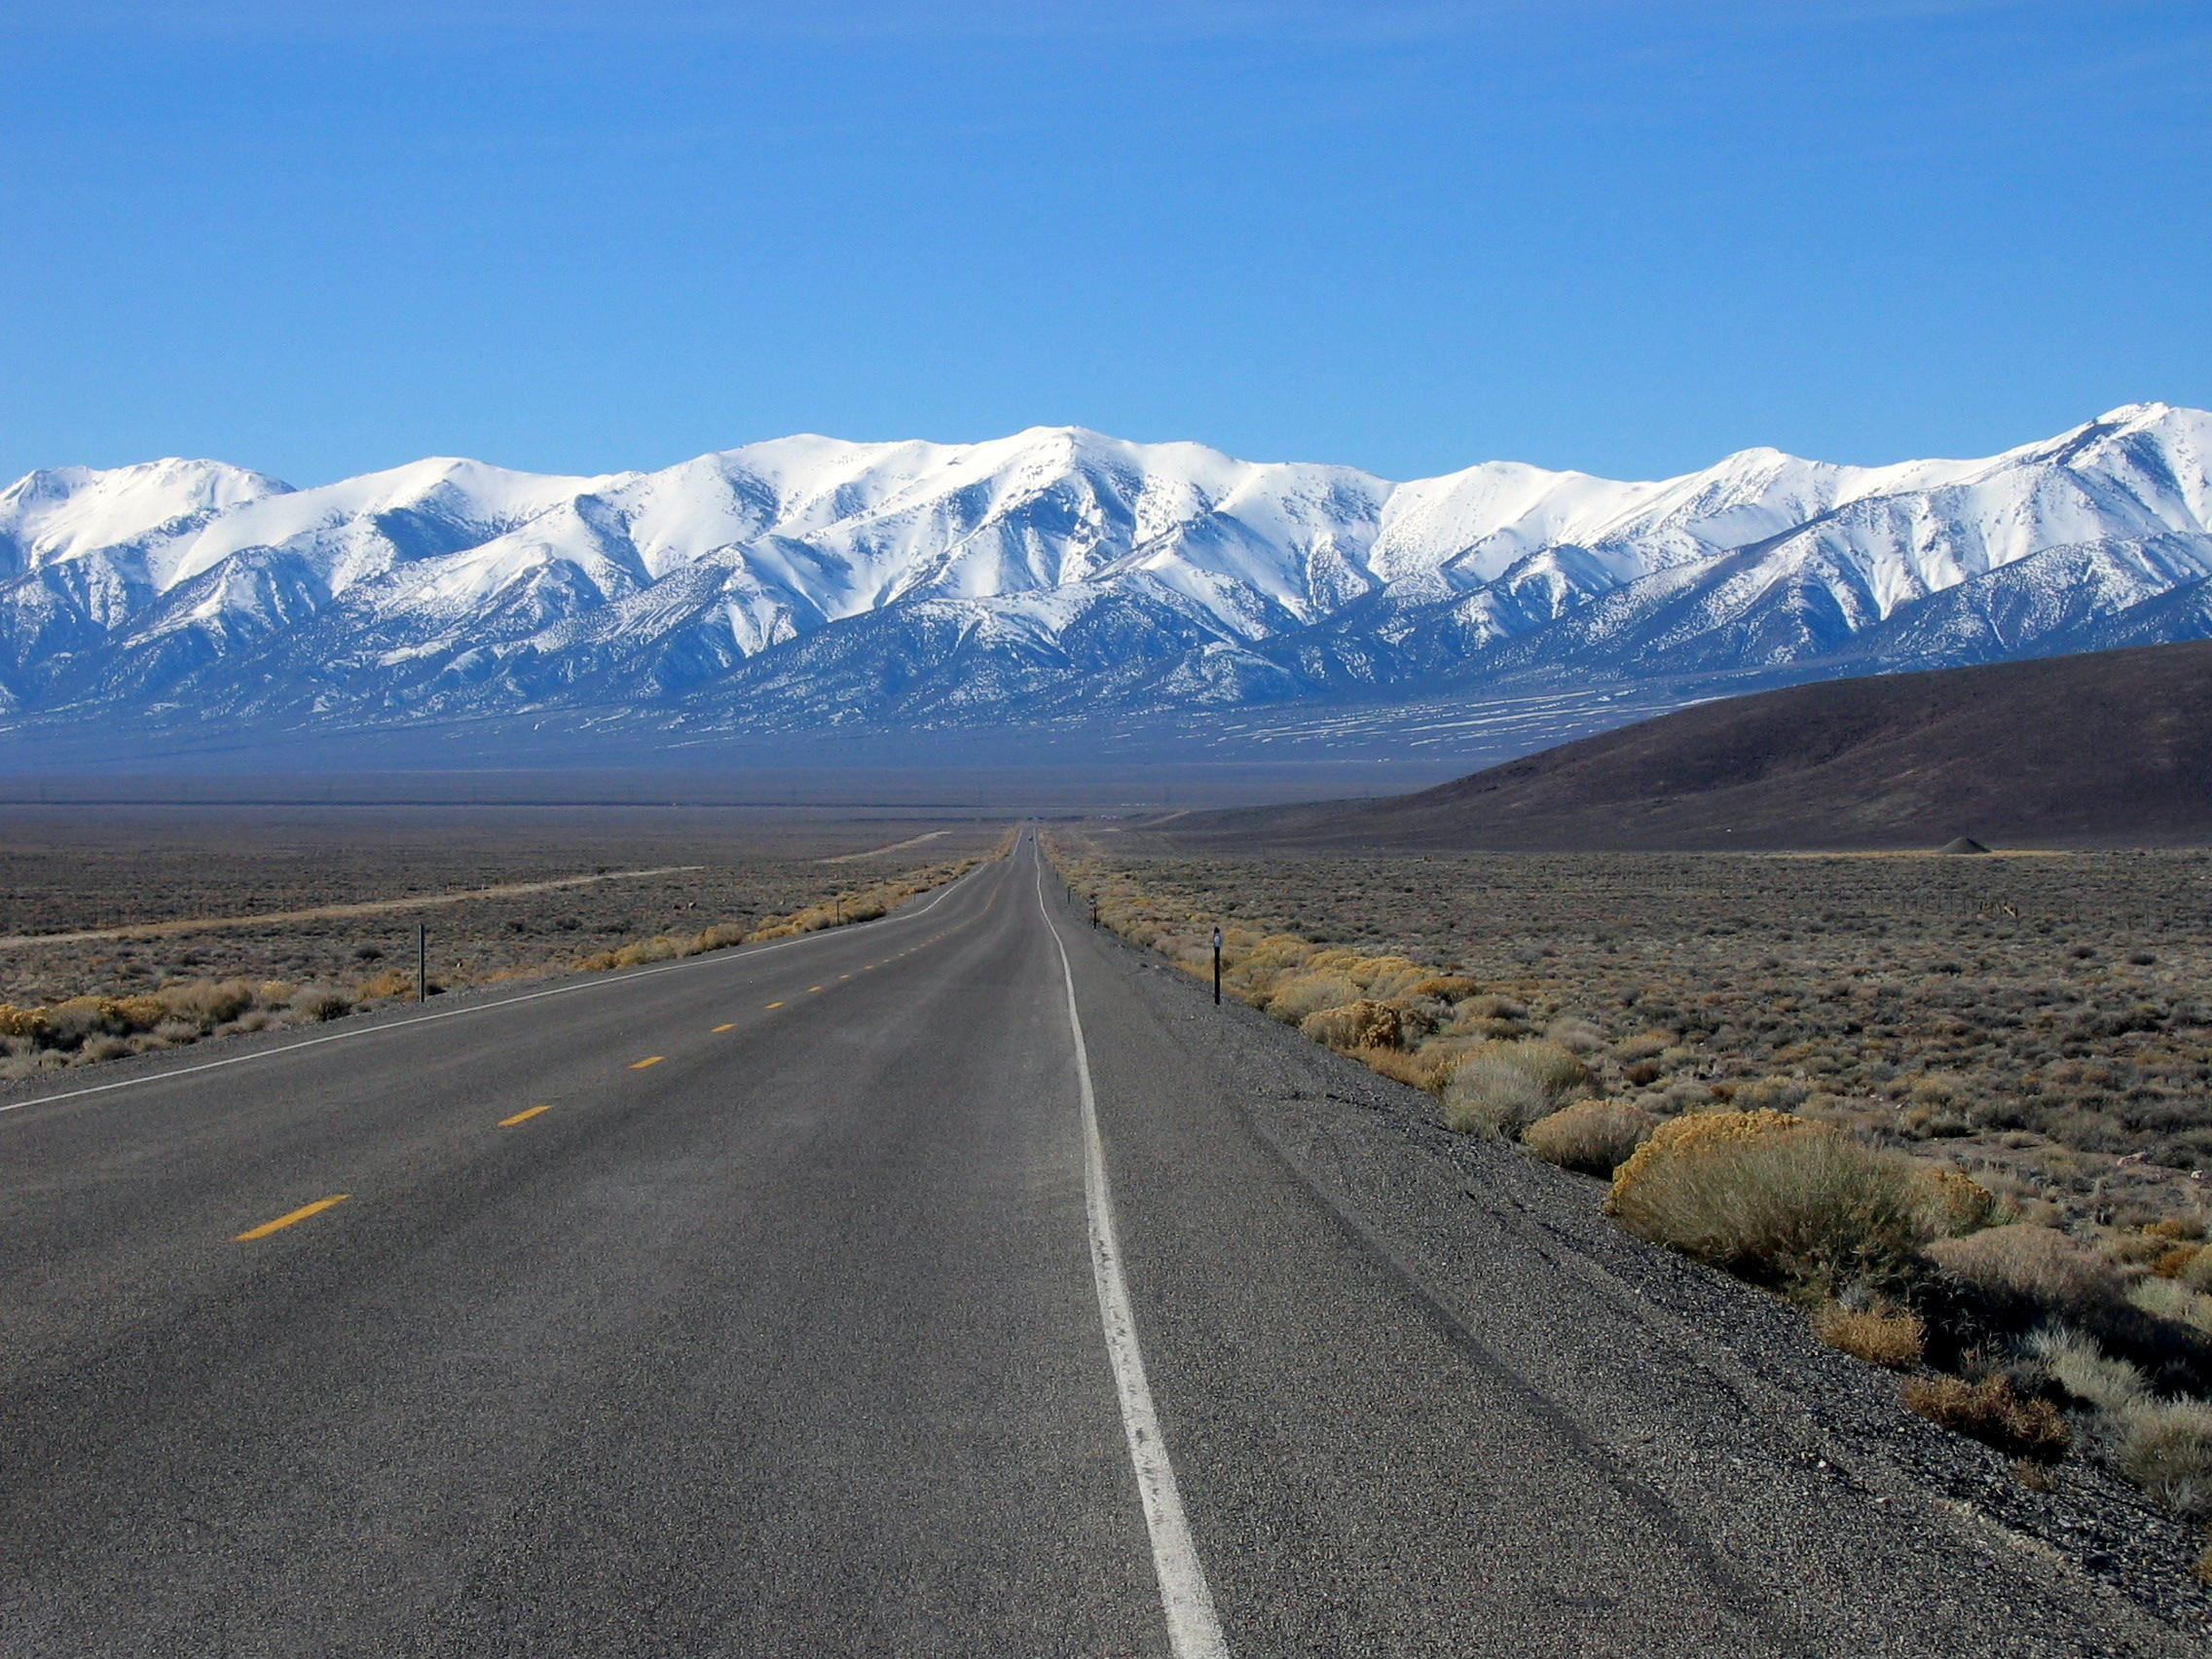 File:US Highway 50 westbound, West of Eureka, NV.jpg - Wikipedia